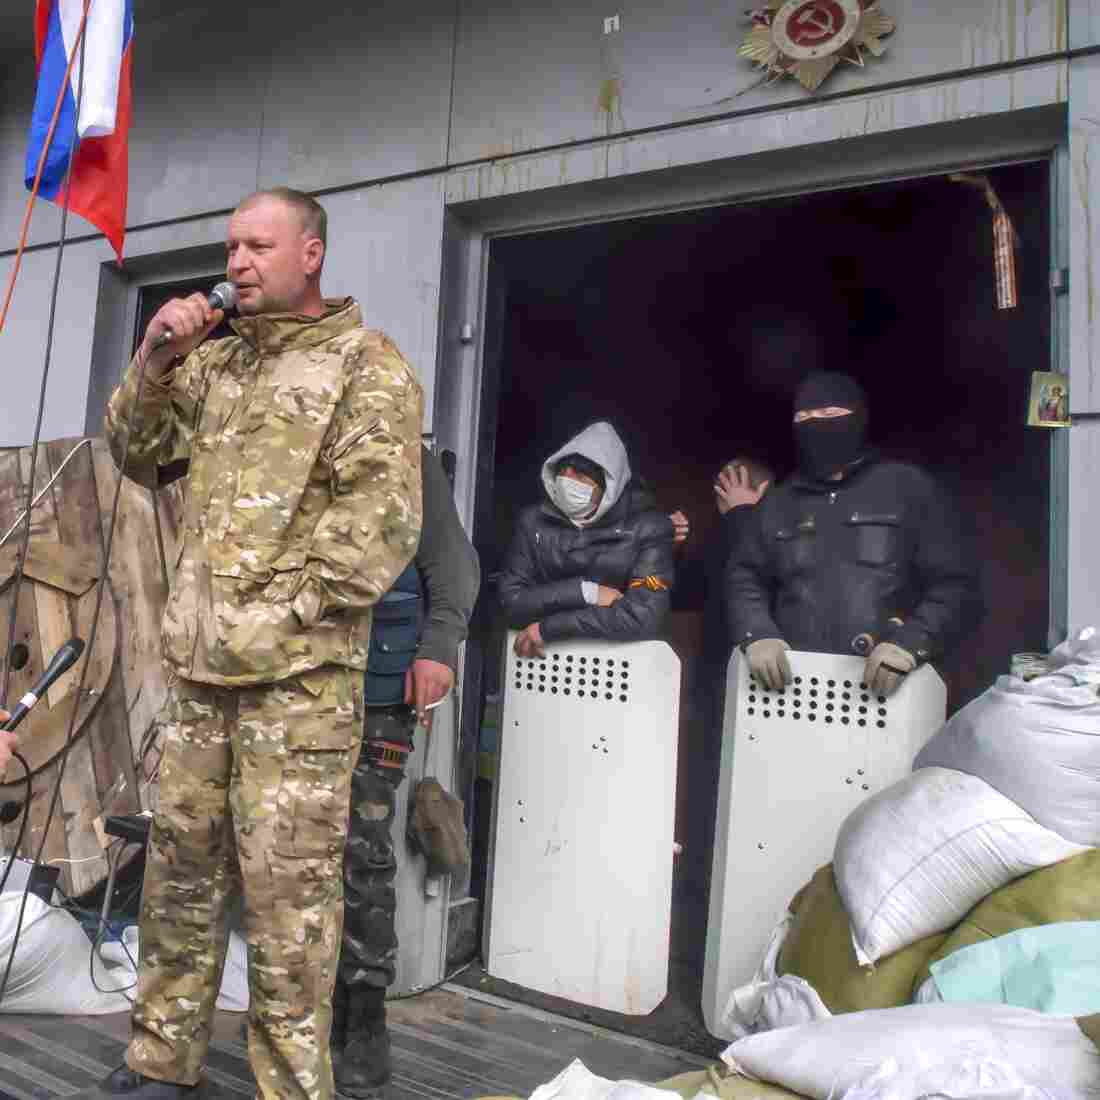 Ukrainian Protesters Seize Weapons, Raising The Stakes